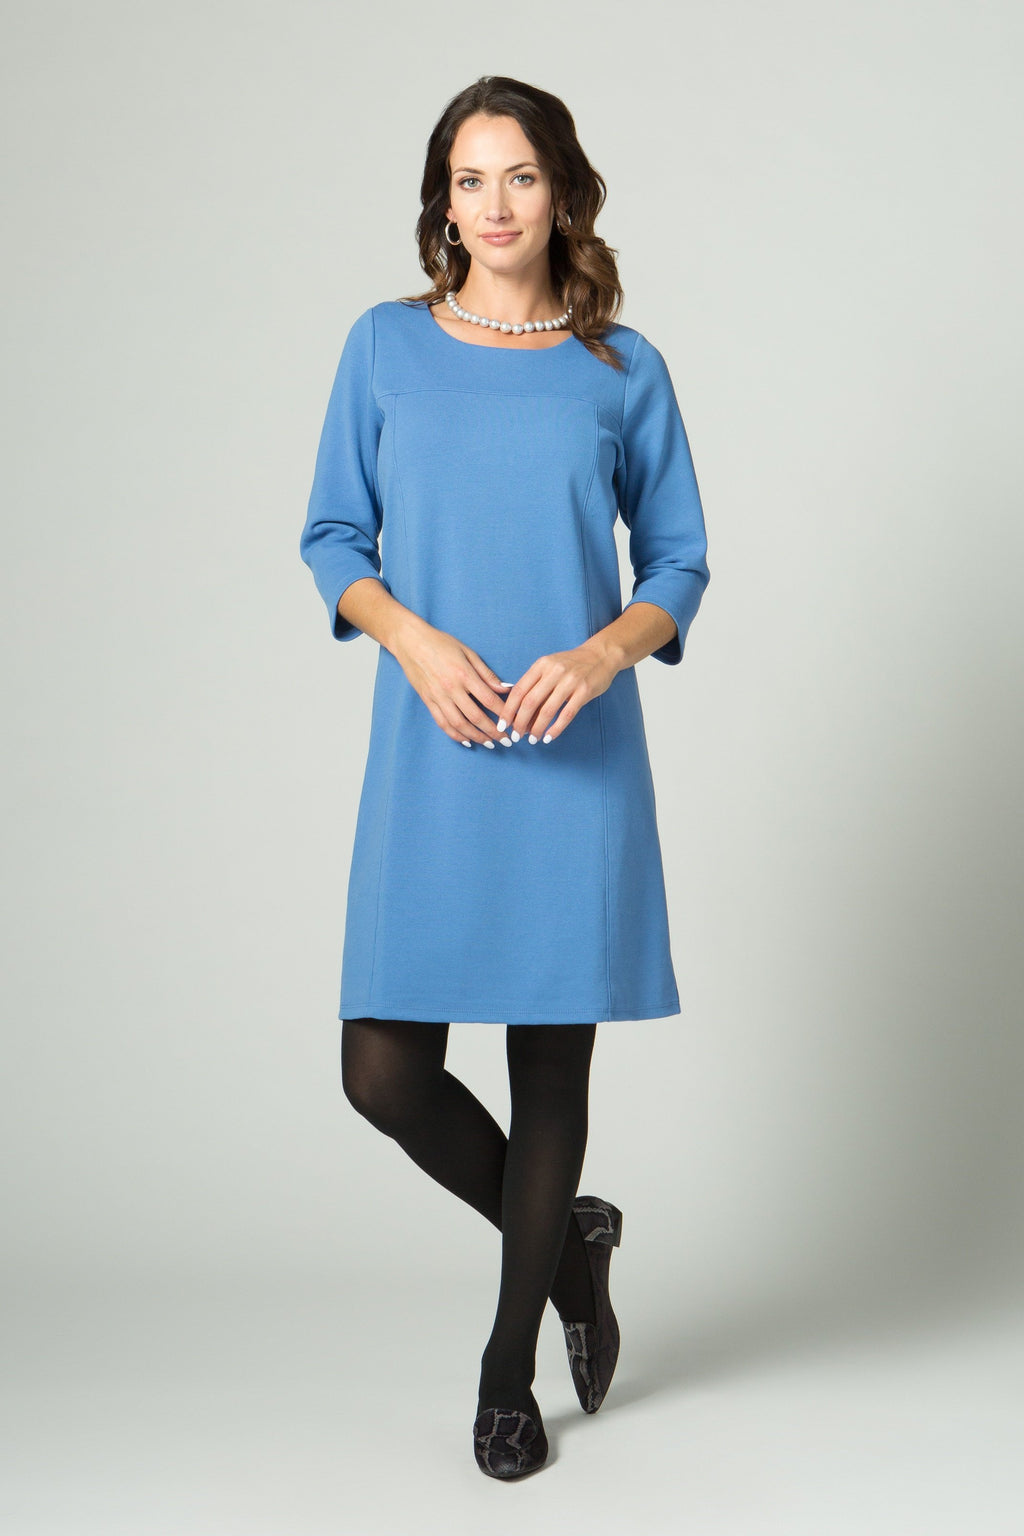 ¾ Sleeve Dress with Seam Detailing - New Orleans Knitwear - Dresses - Casual